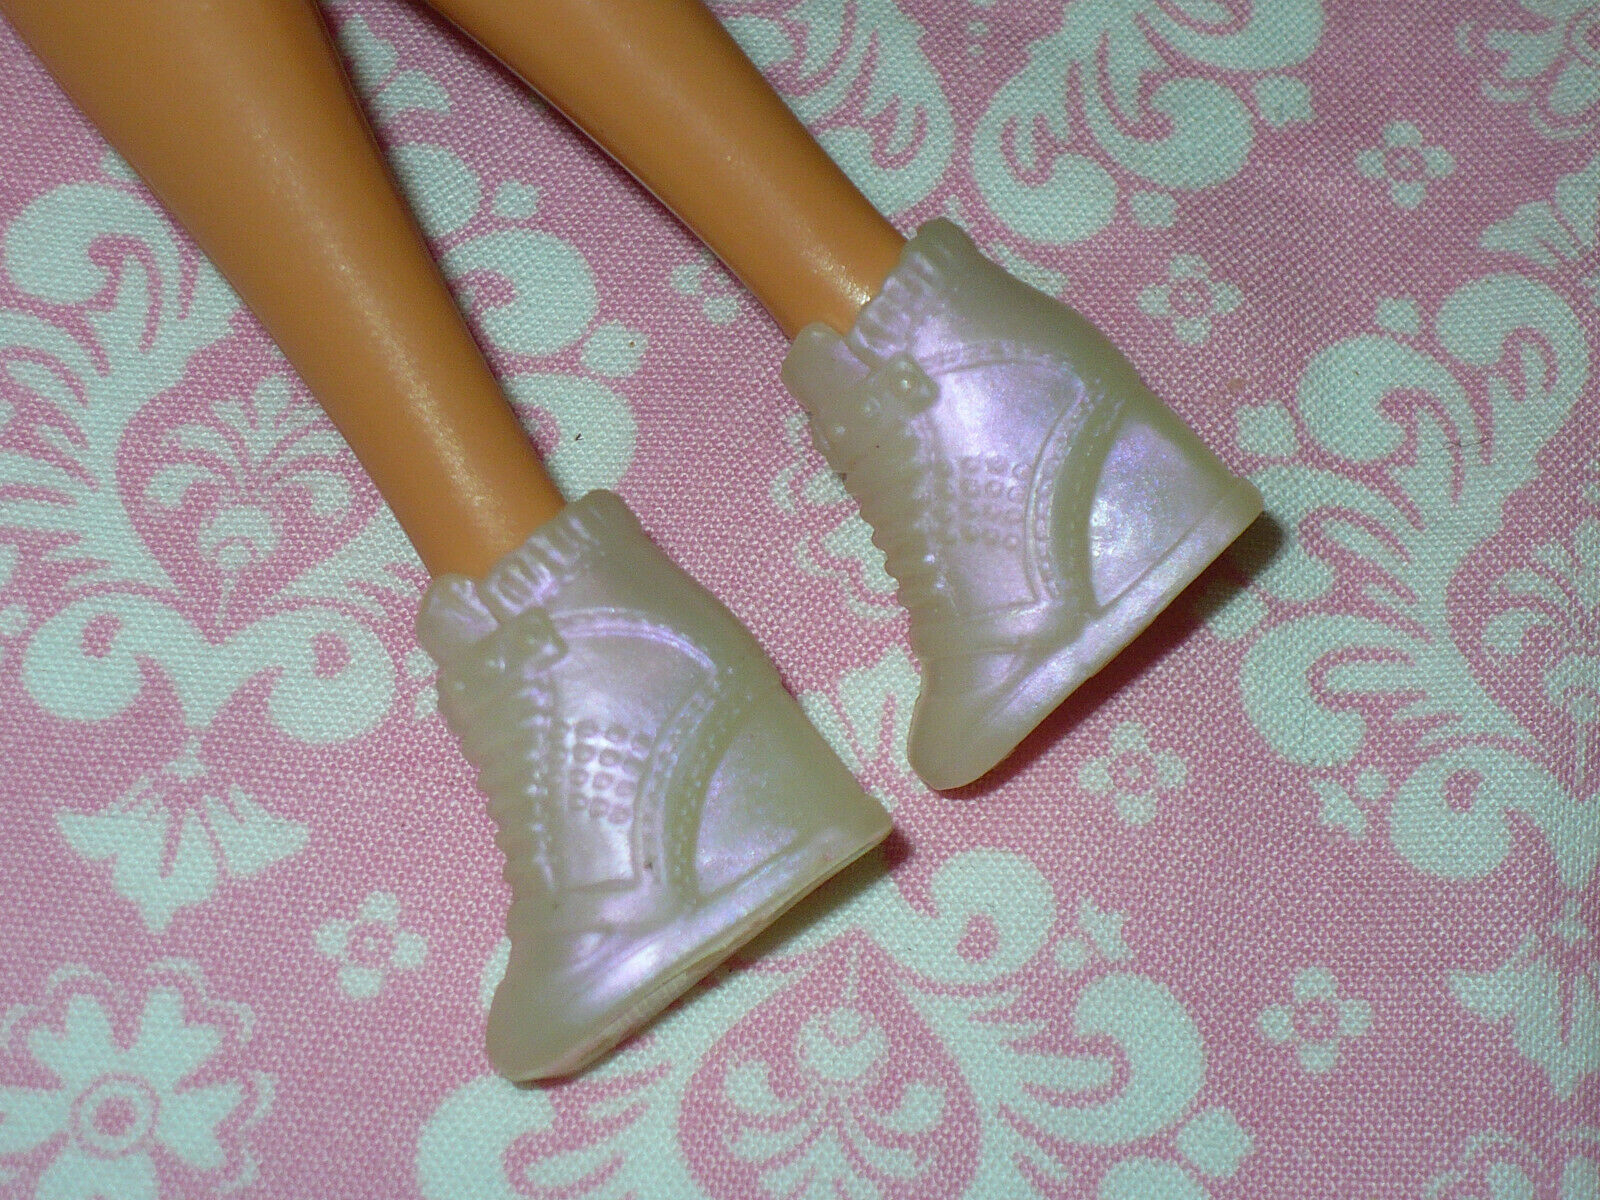 Mattel Barbie Doll Shoes FASHIONISTAS Fashion Fever OPALESCENT WEDGE SNEAKERS - $15.99